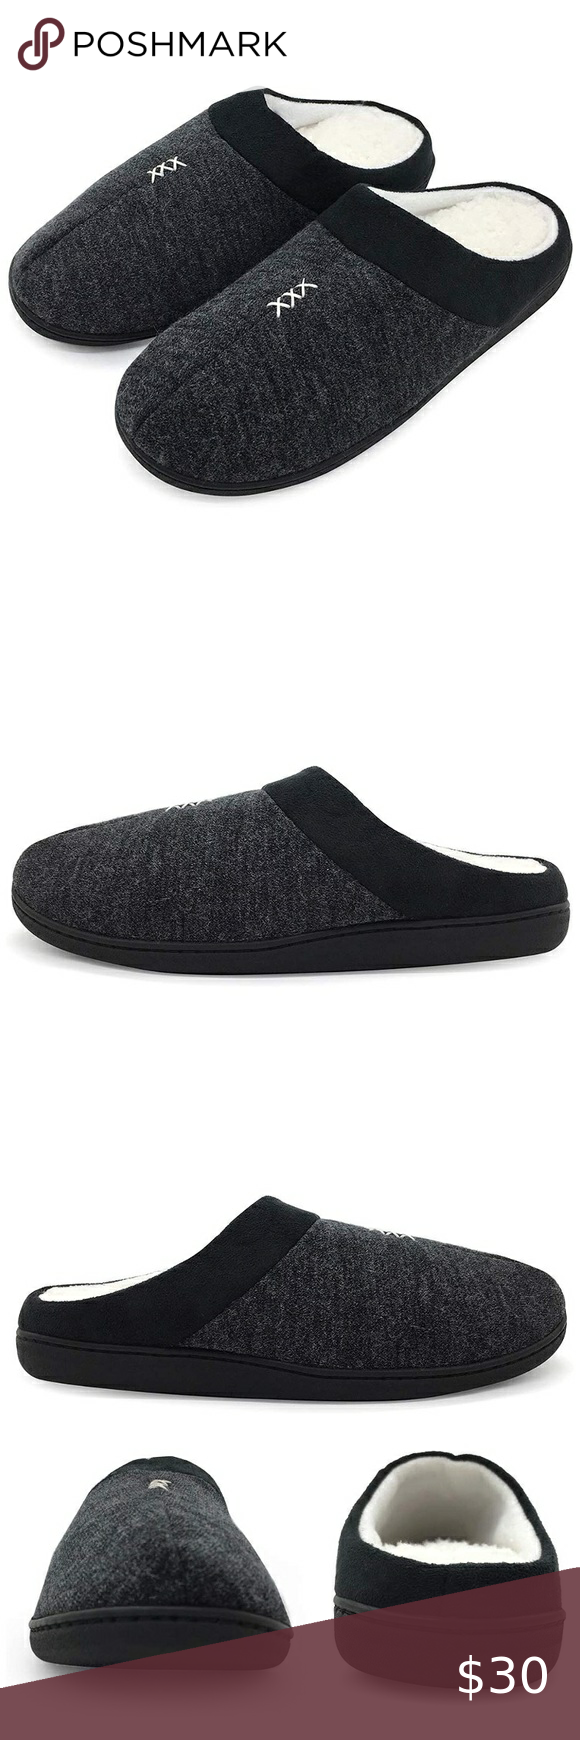 Mens Cashmere House Slippers in 2020